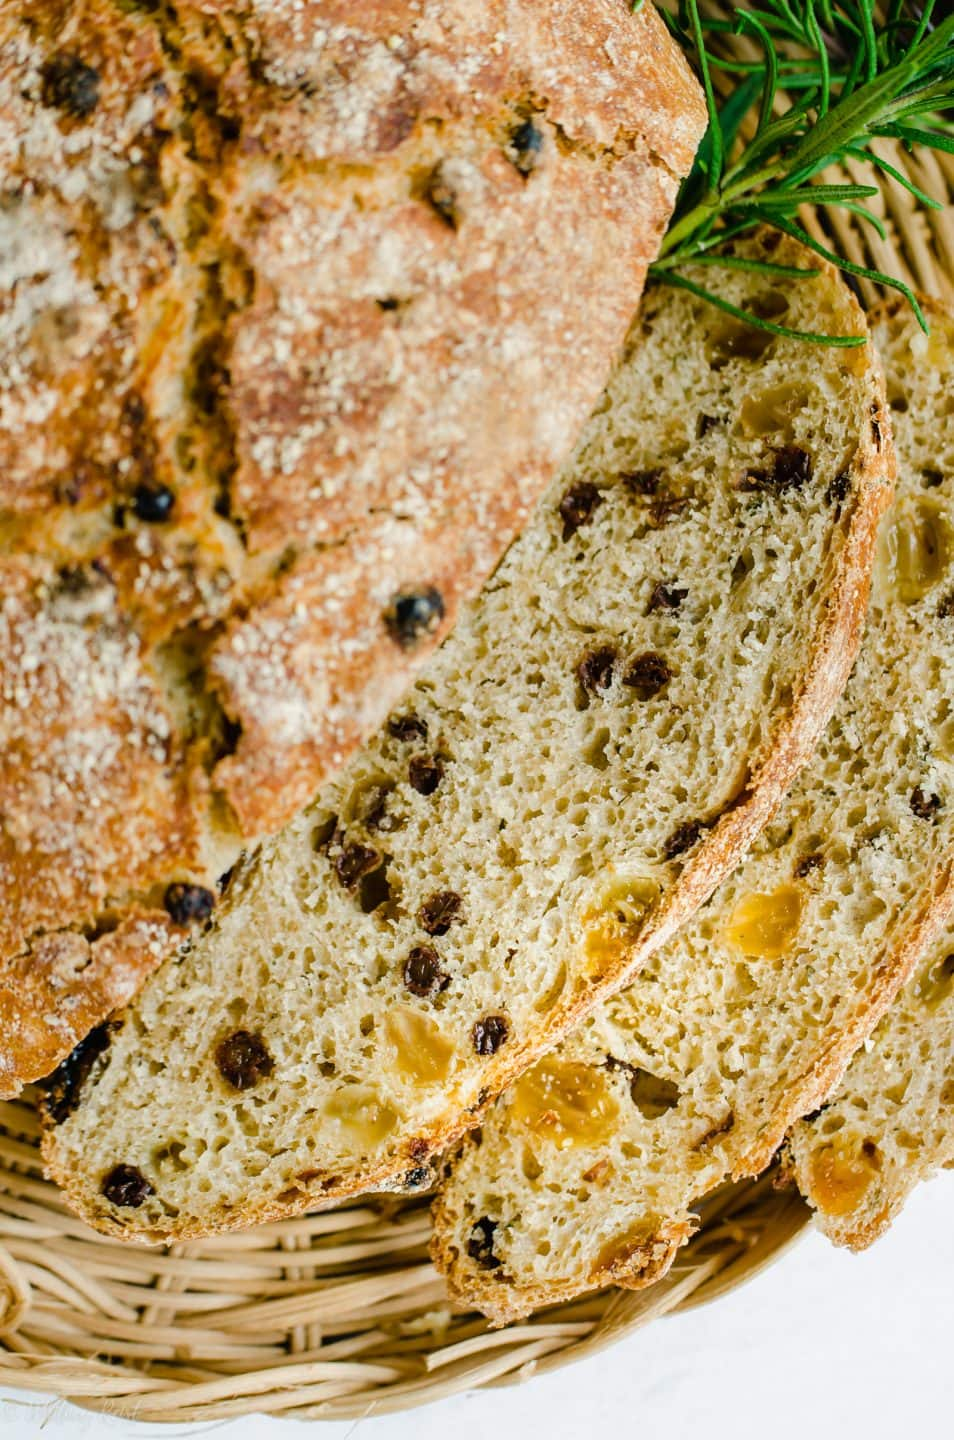 A close up shot of slice of Rosemary Raisin Bread to show the texture and holes from fermentation.